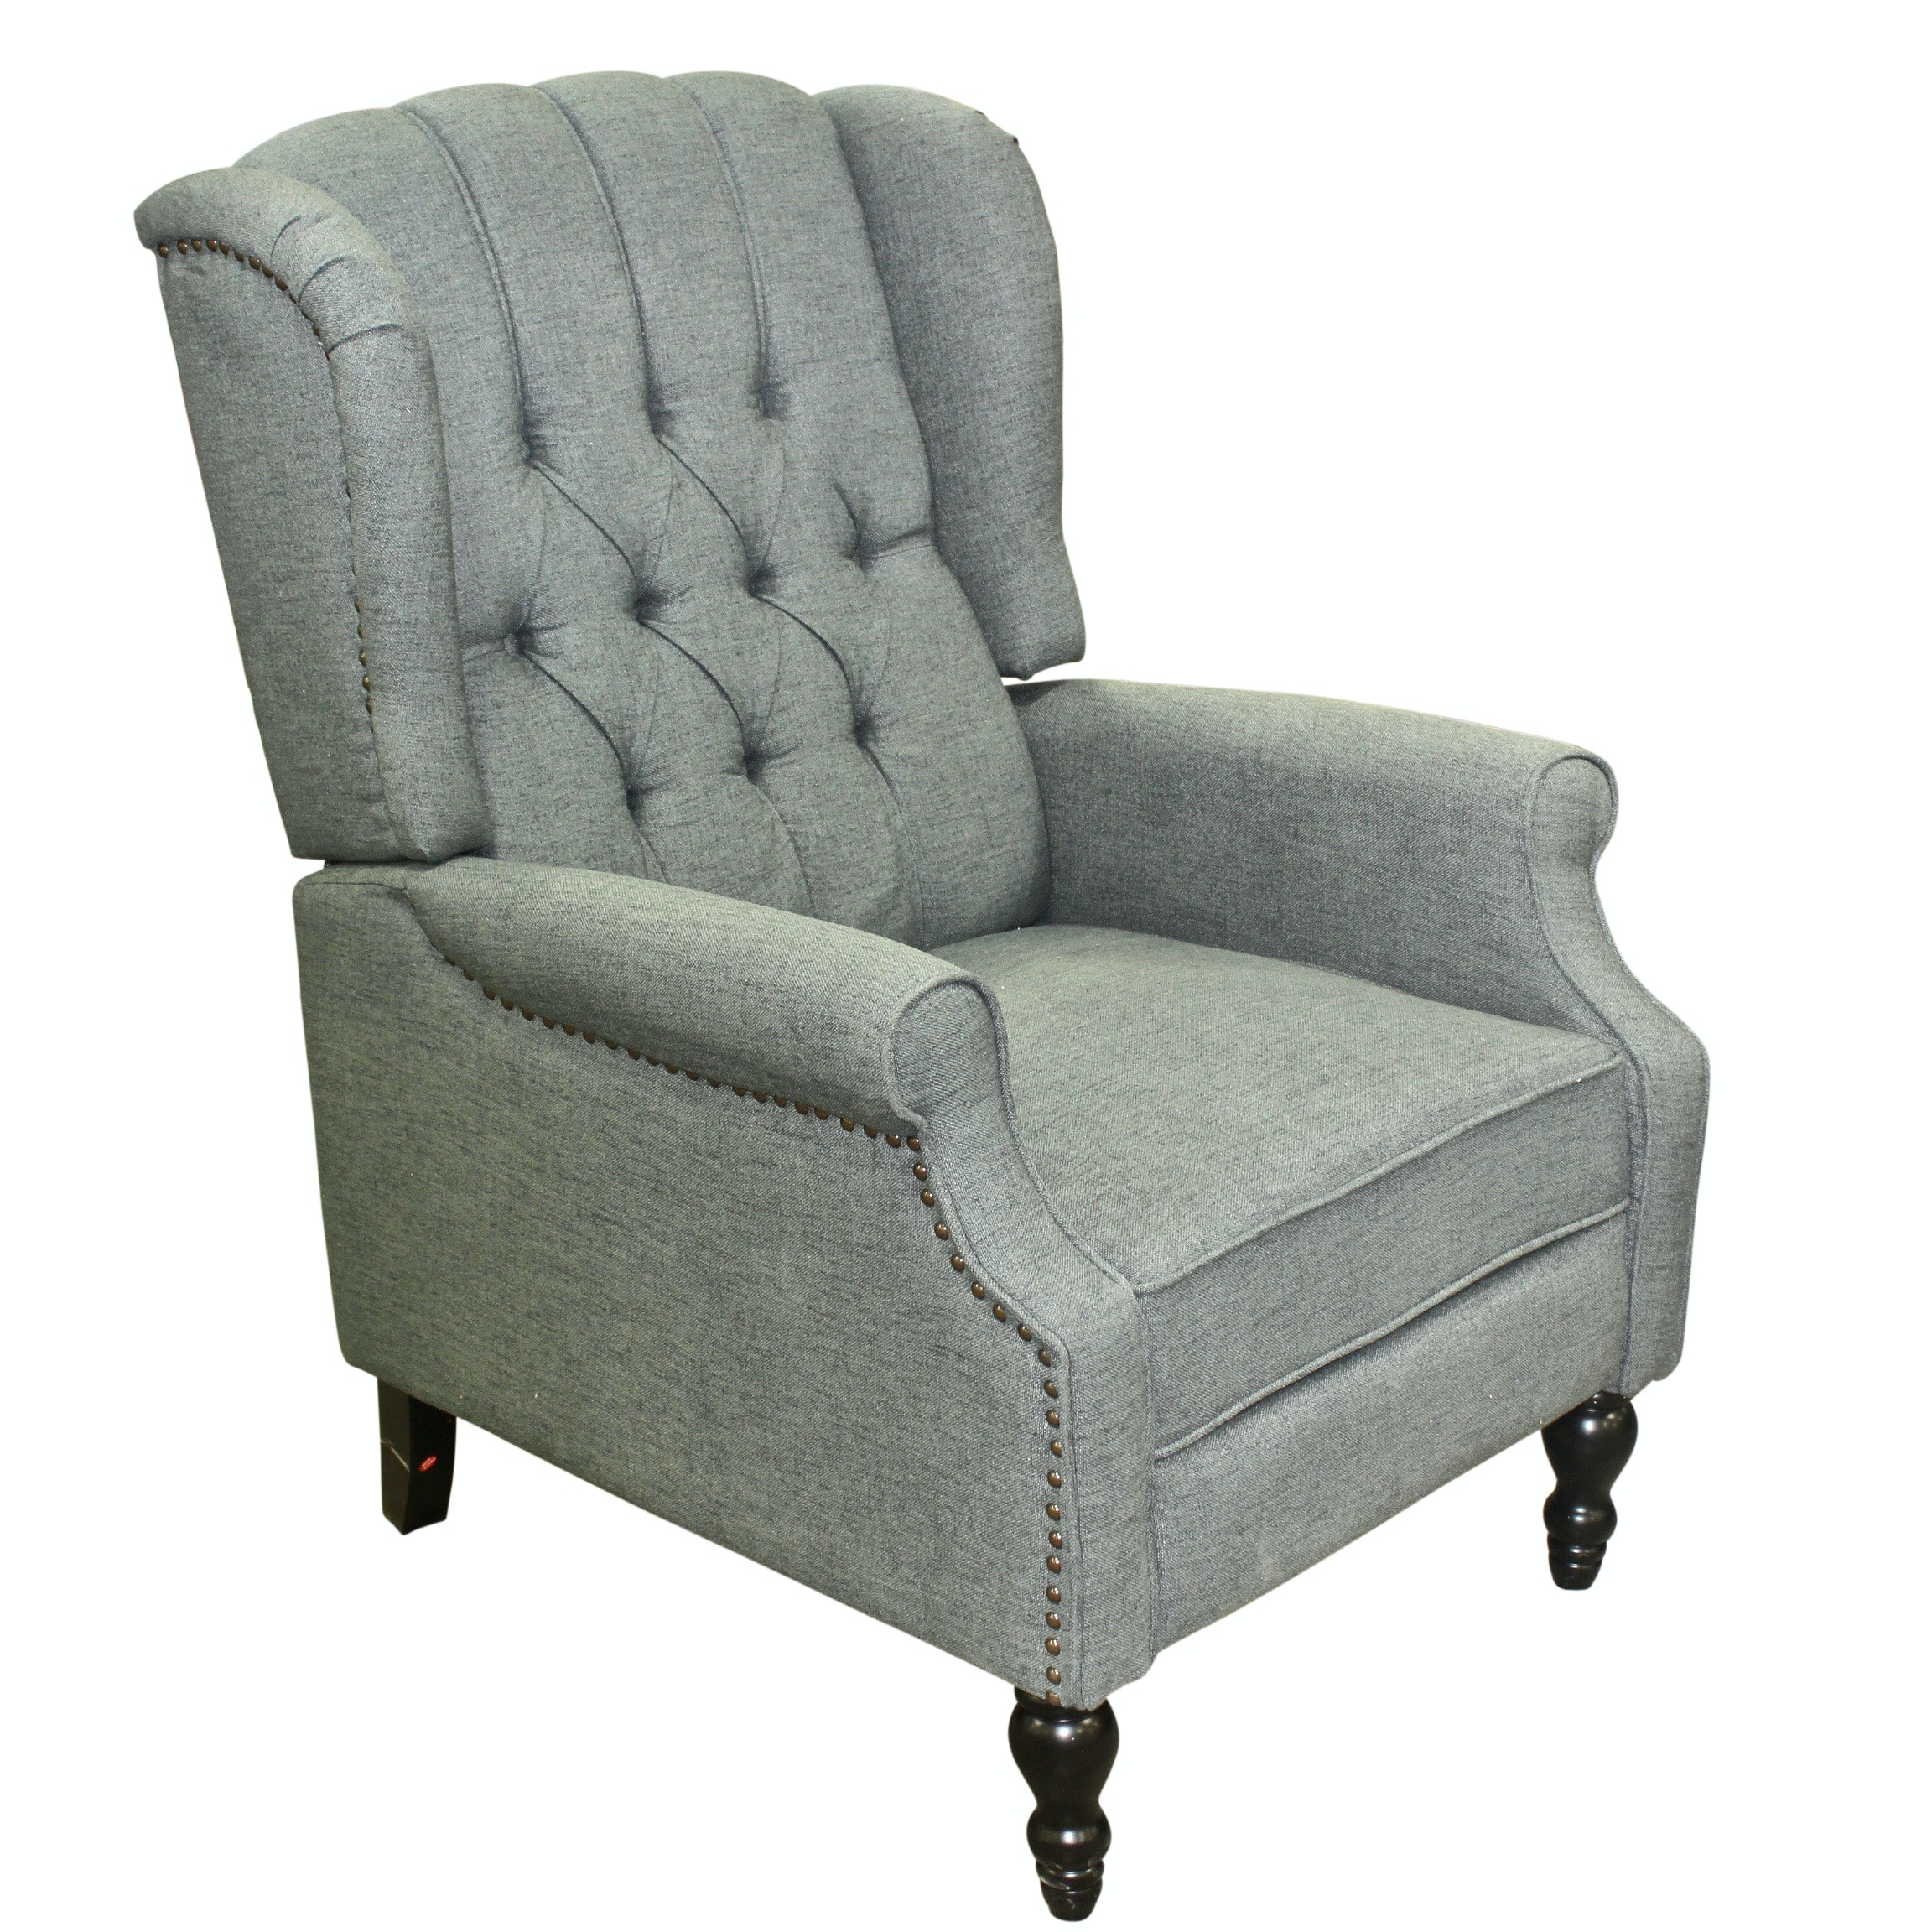 Tufted Reclining Arm Chair With Studded Accents, Contemporary